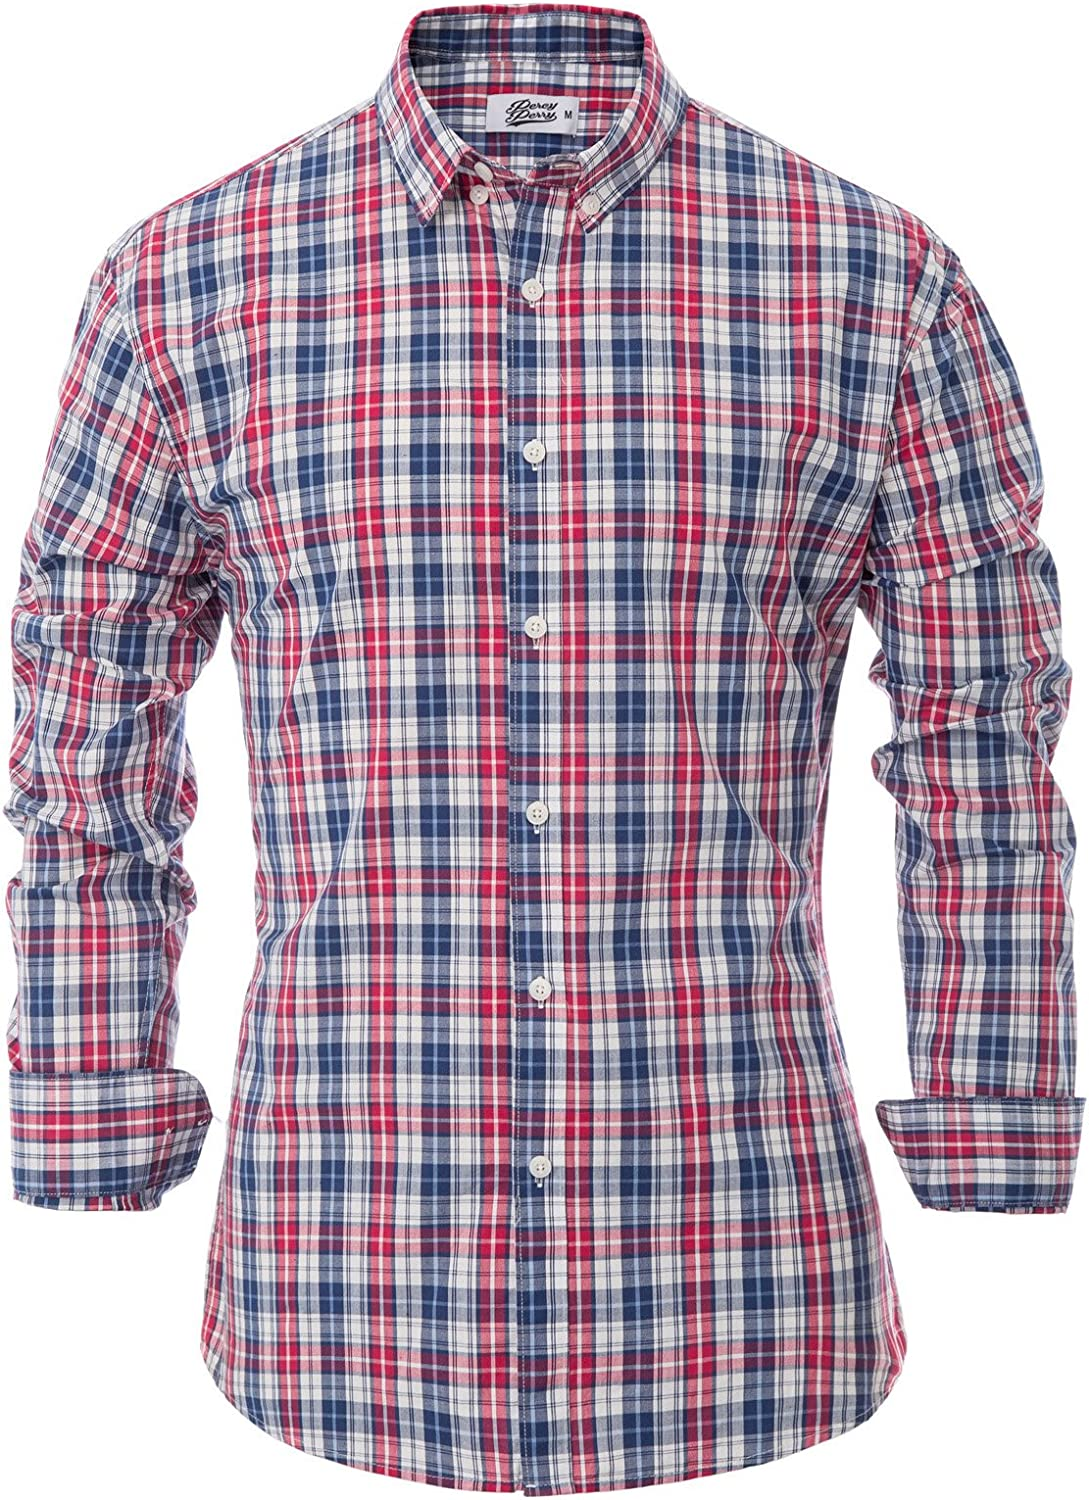 Percy Perry Mens Slim Fit Grid Long Sleeve Ironing Free Button Collar Shirt